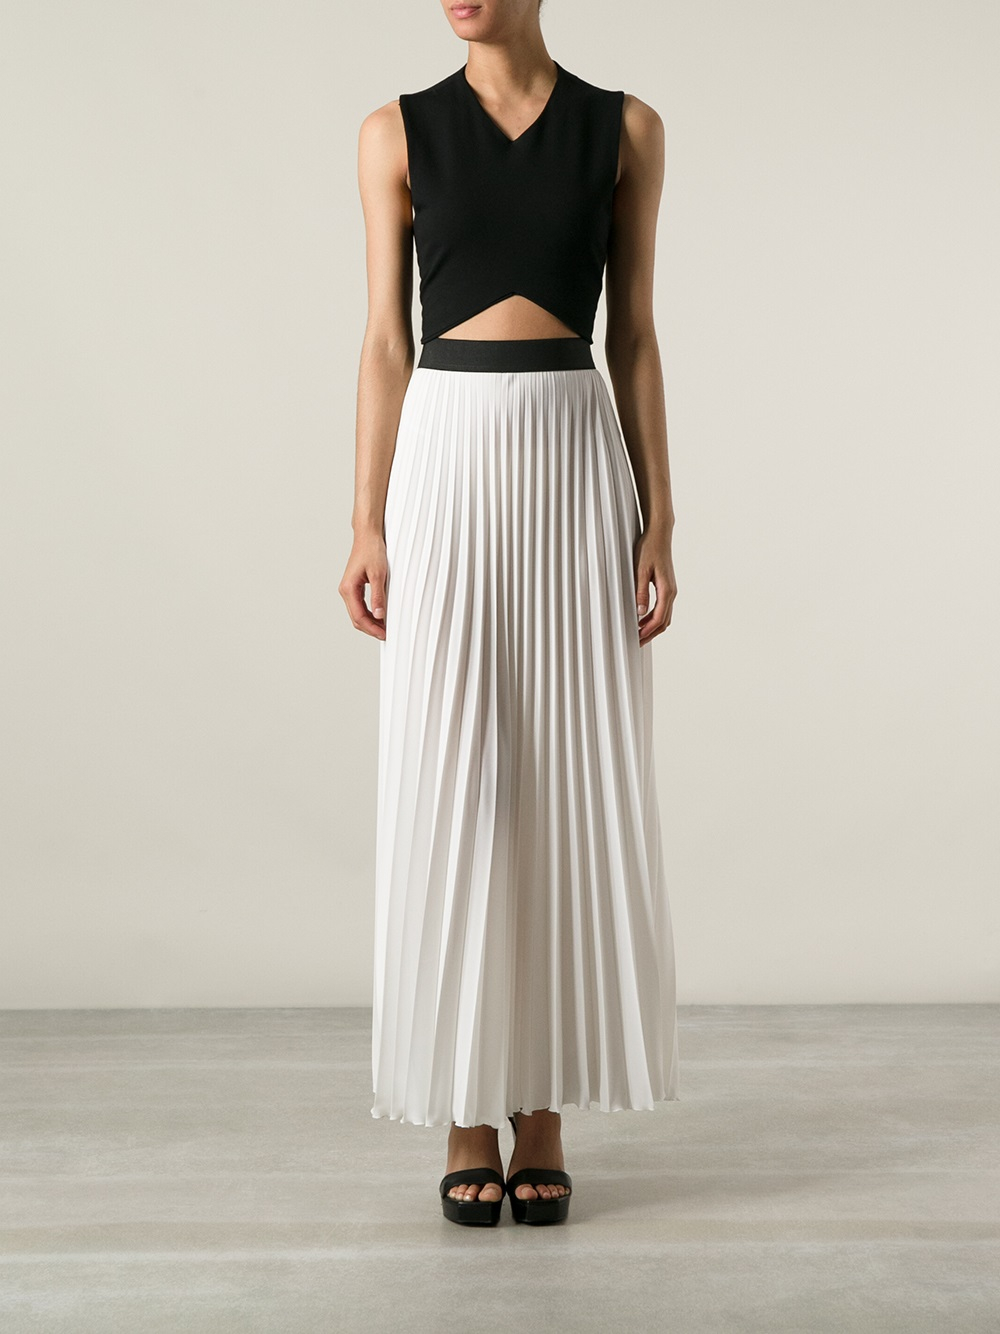 P.a.r.o.s.h. Long Pleated Skirt in White | Lyst